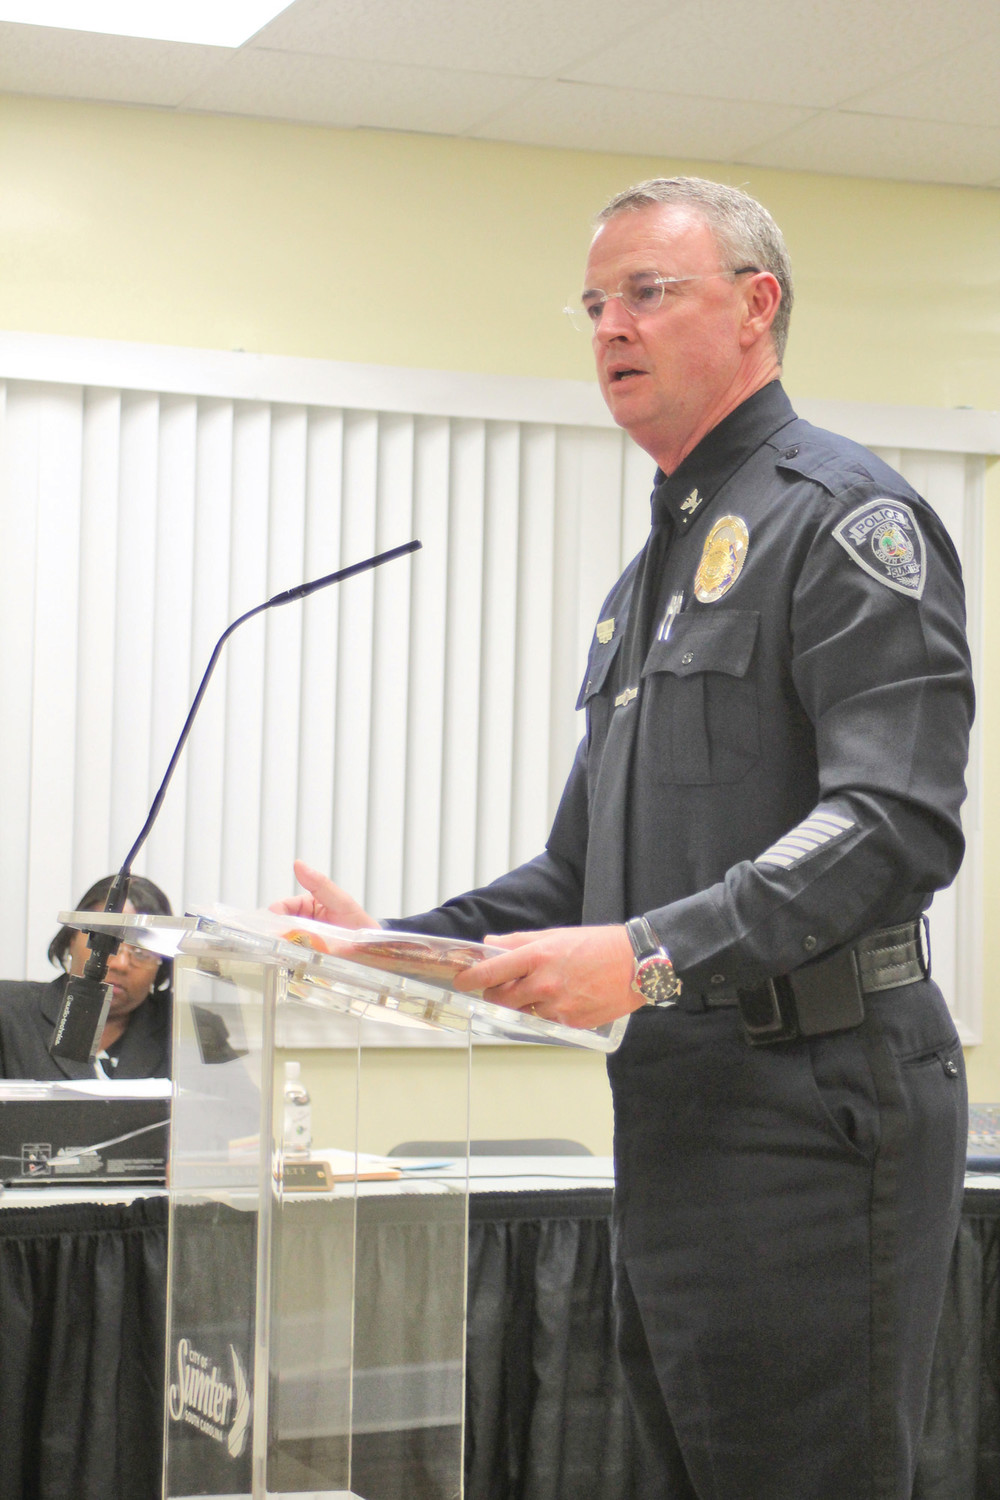 "SUMTER ITEM FILE PHOTO Sumter Police Chief Russell Roark III urged residents to ""Lock It Before You Leave It"" at Tuesday's Sumter City Council meeting. Roark was referring to the department's initiative to prevent vehicle break-ins in Sumter. Roark also spoke on the department's efforts to connect with the community."